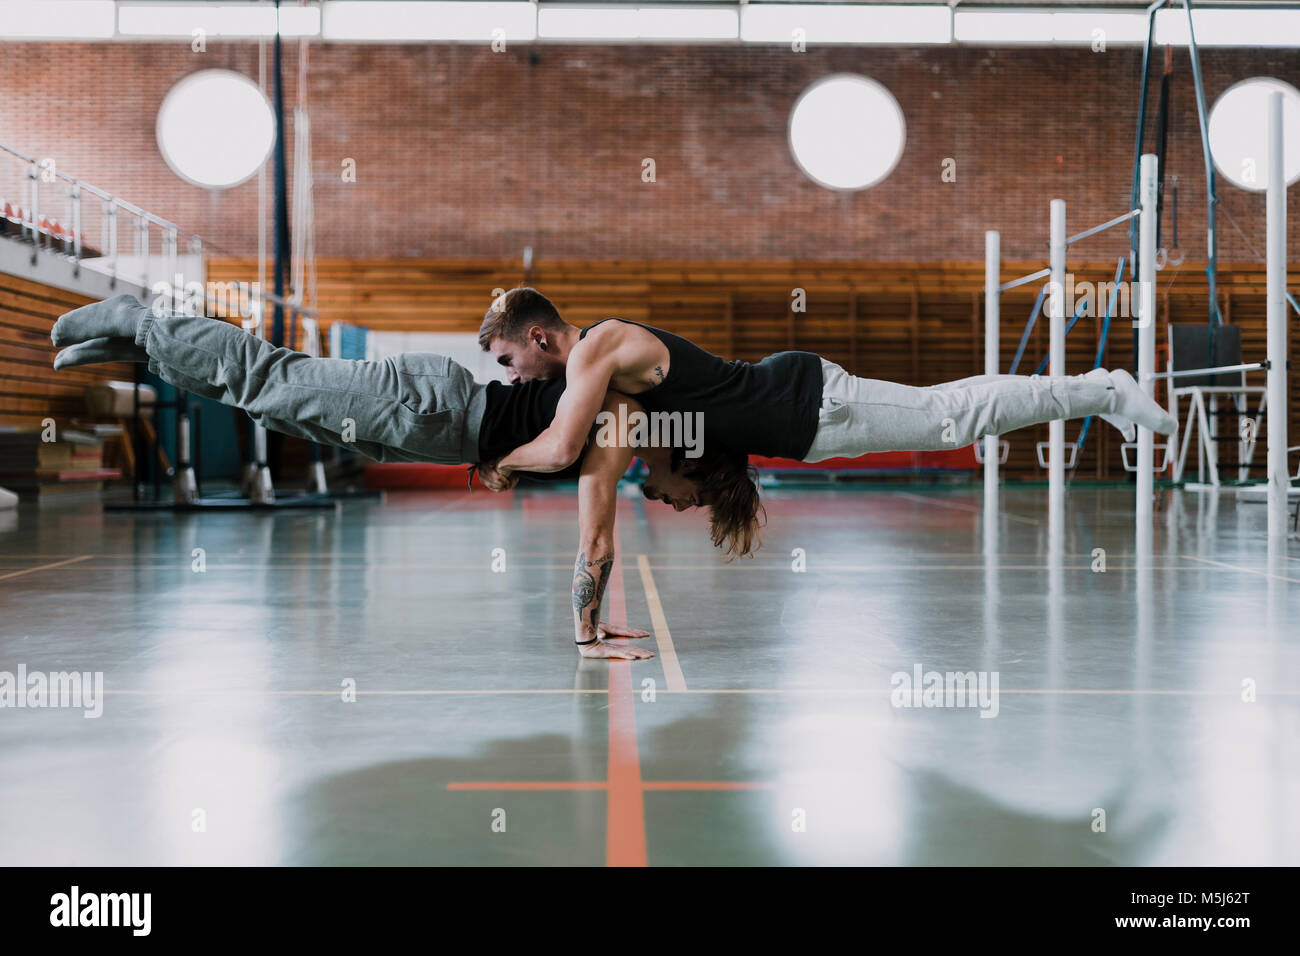 Two men doing acrobatics in gym - Stock Image